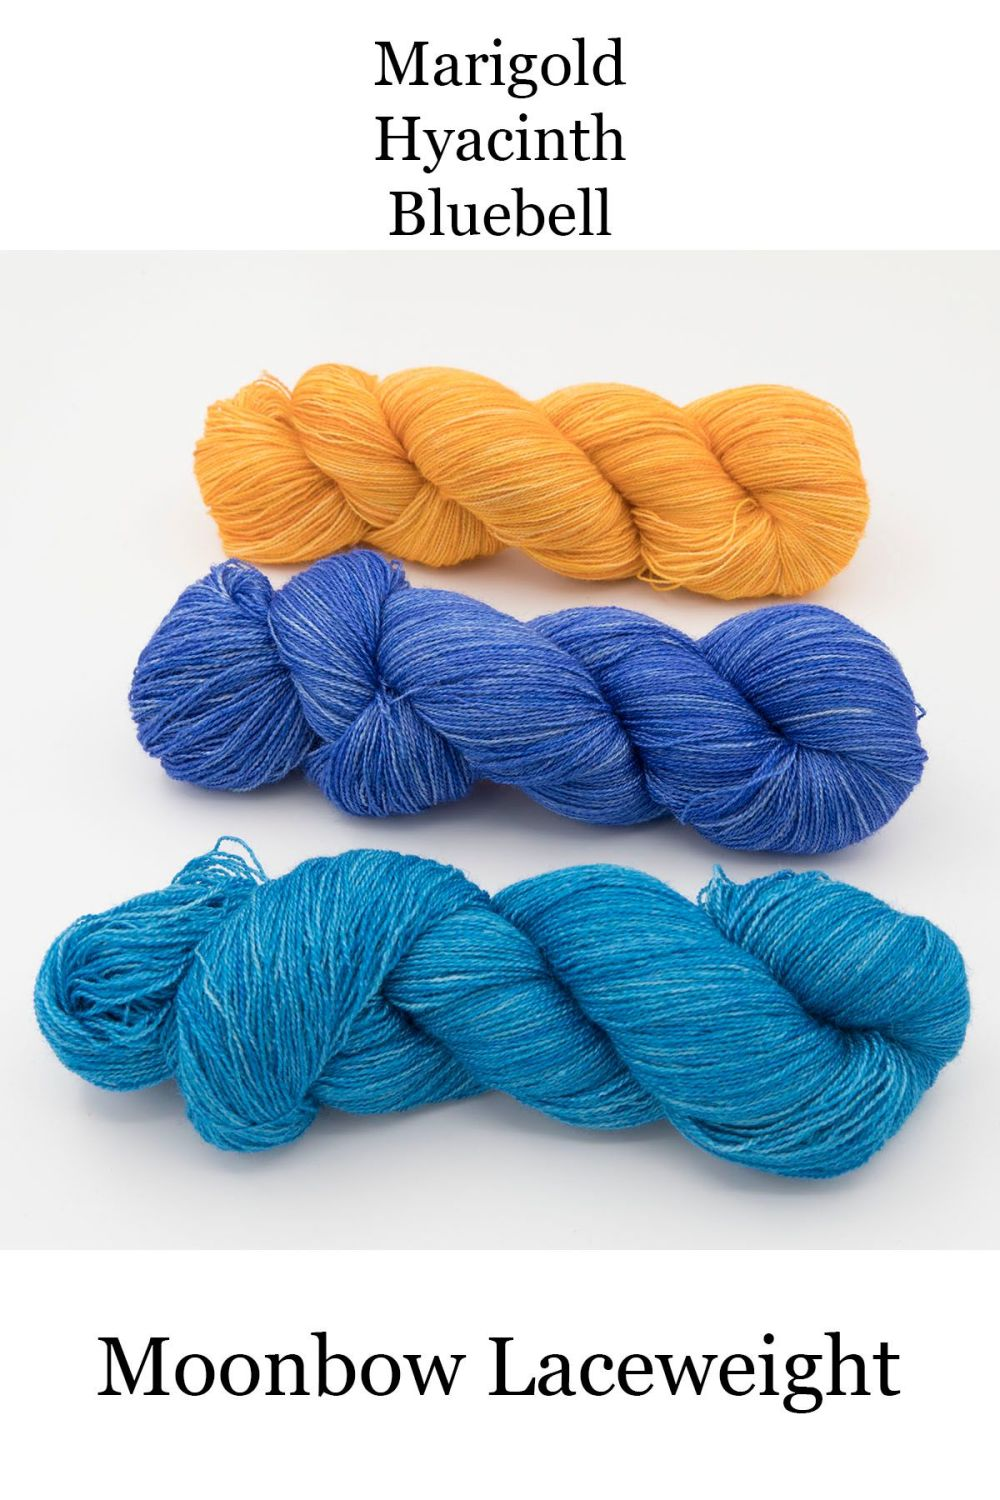 moonbow marigold, hyacinth, bluebell